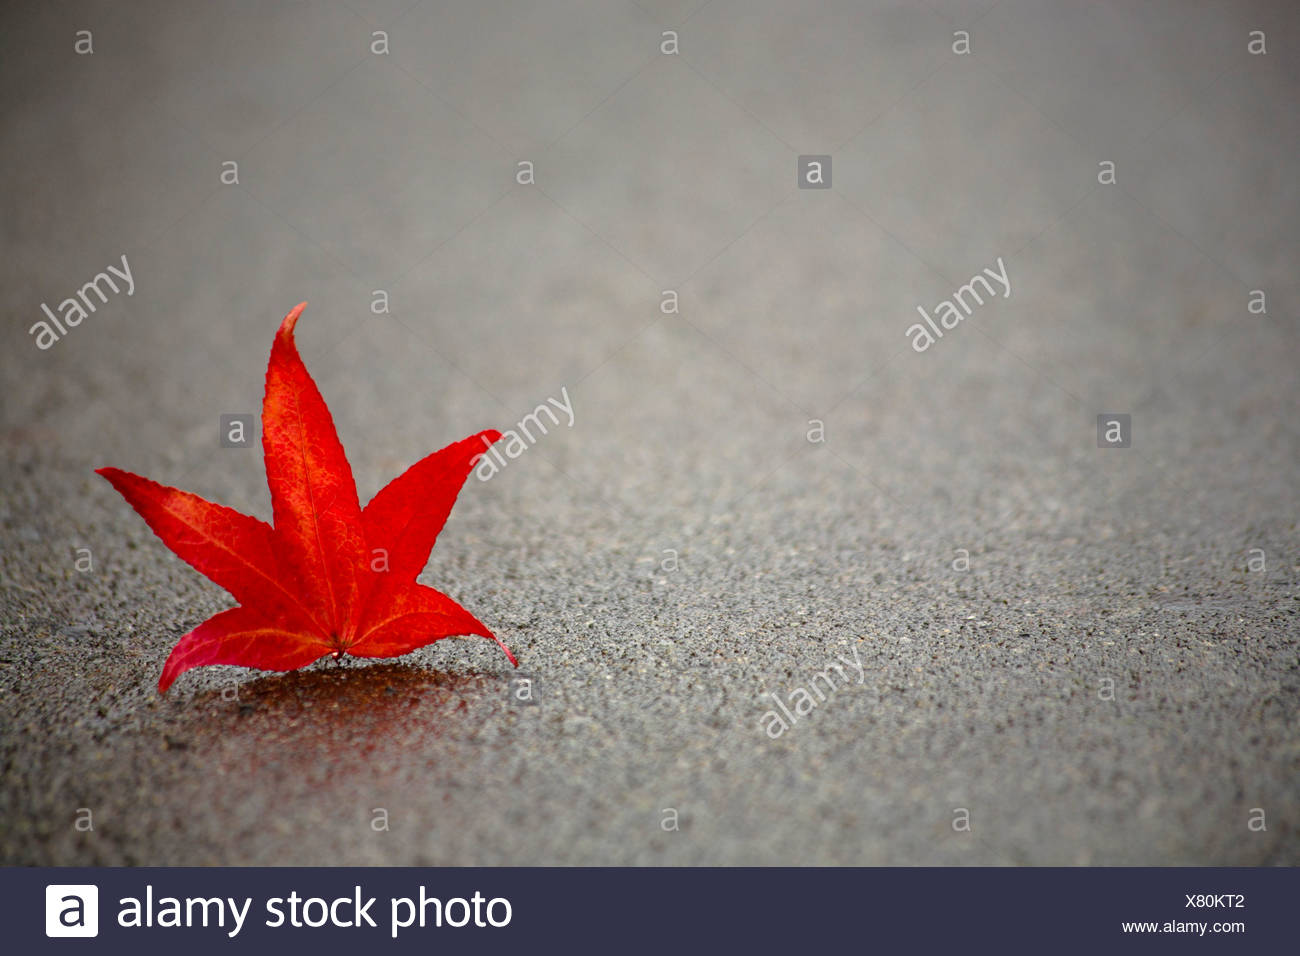 Red leaf on concrete - Stock Image